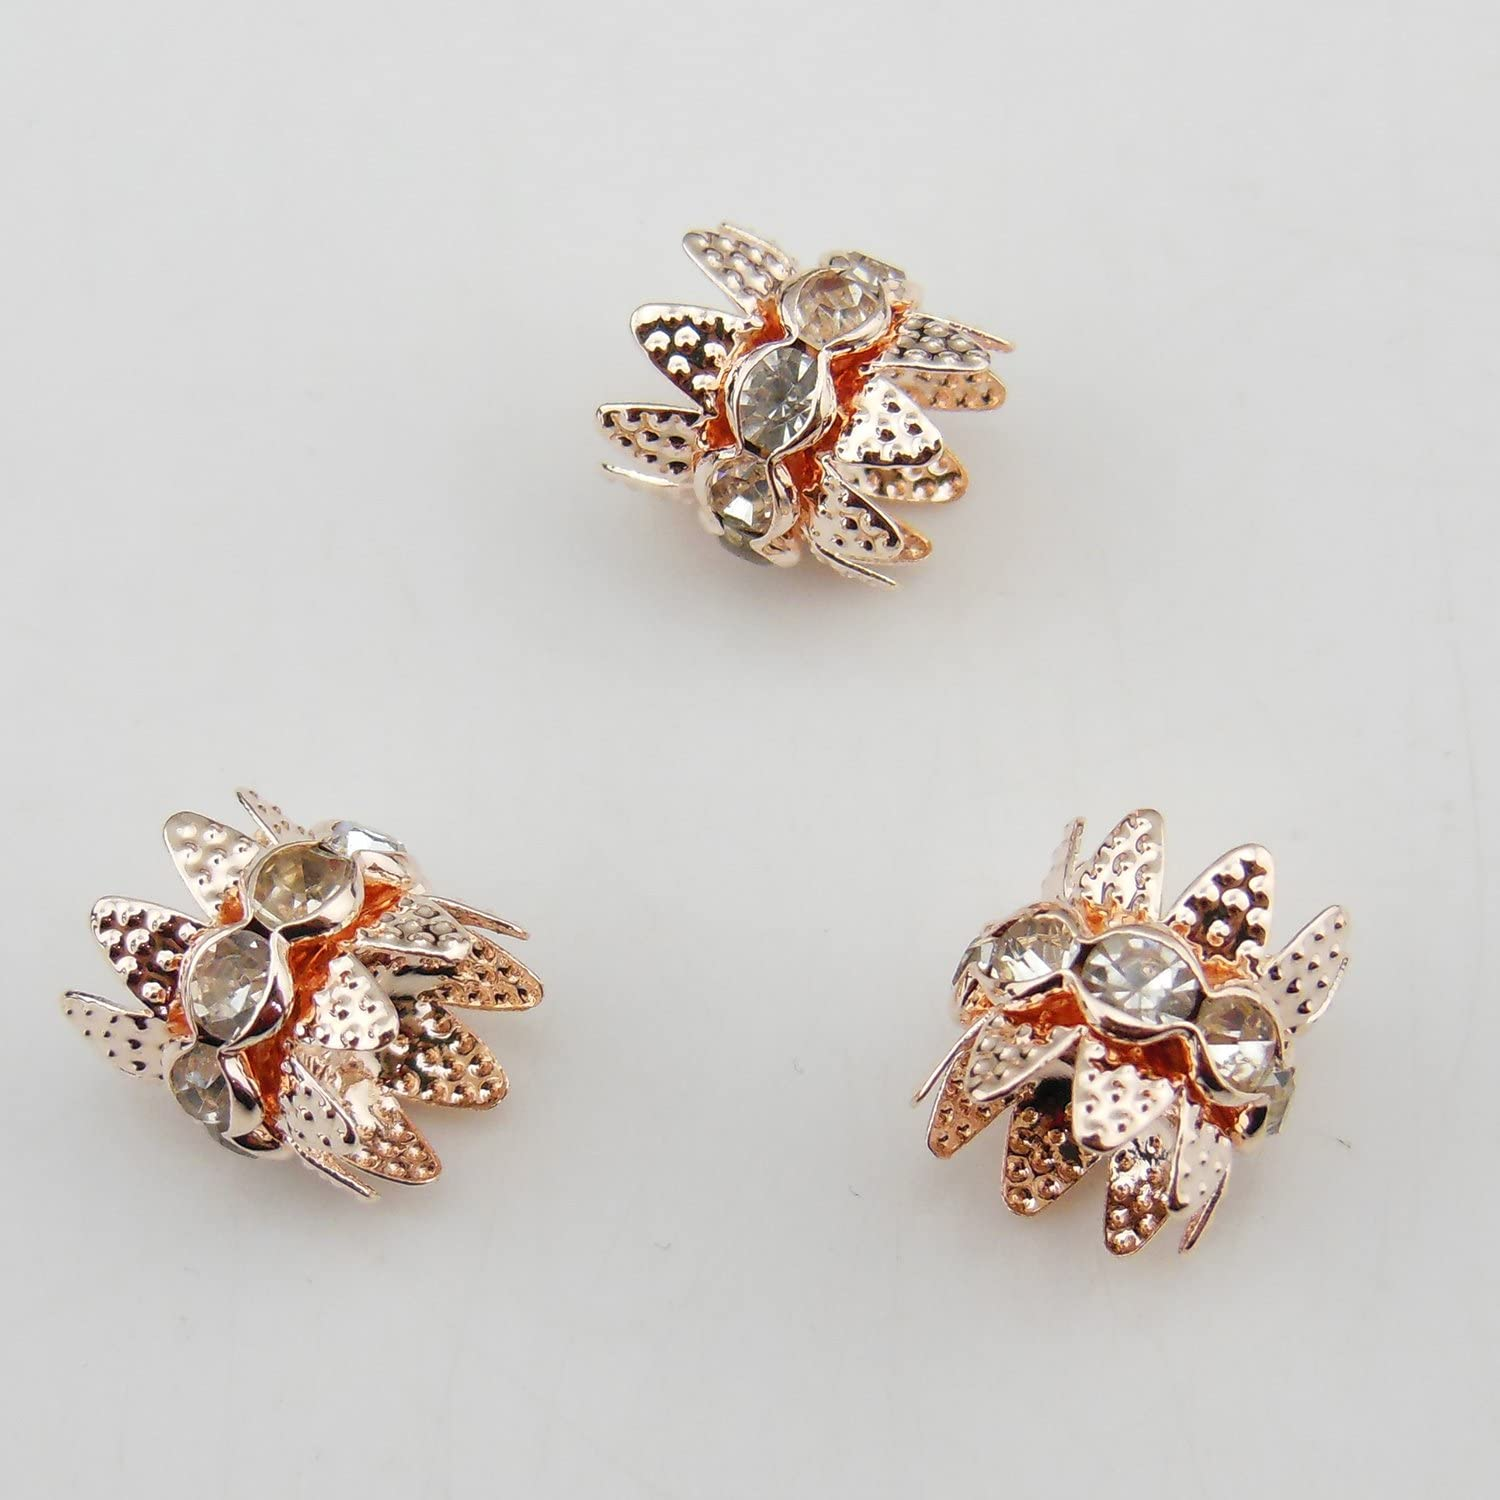 30PCS 10mm Silver Plated Double Beads Caps With Rhinestone Filigree Flower Cup for Jewelry Making DIY HT-1000-1